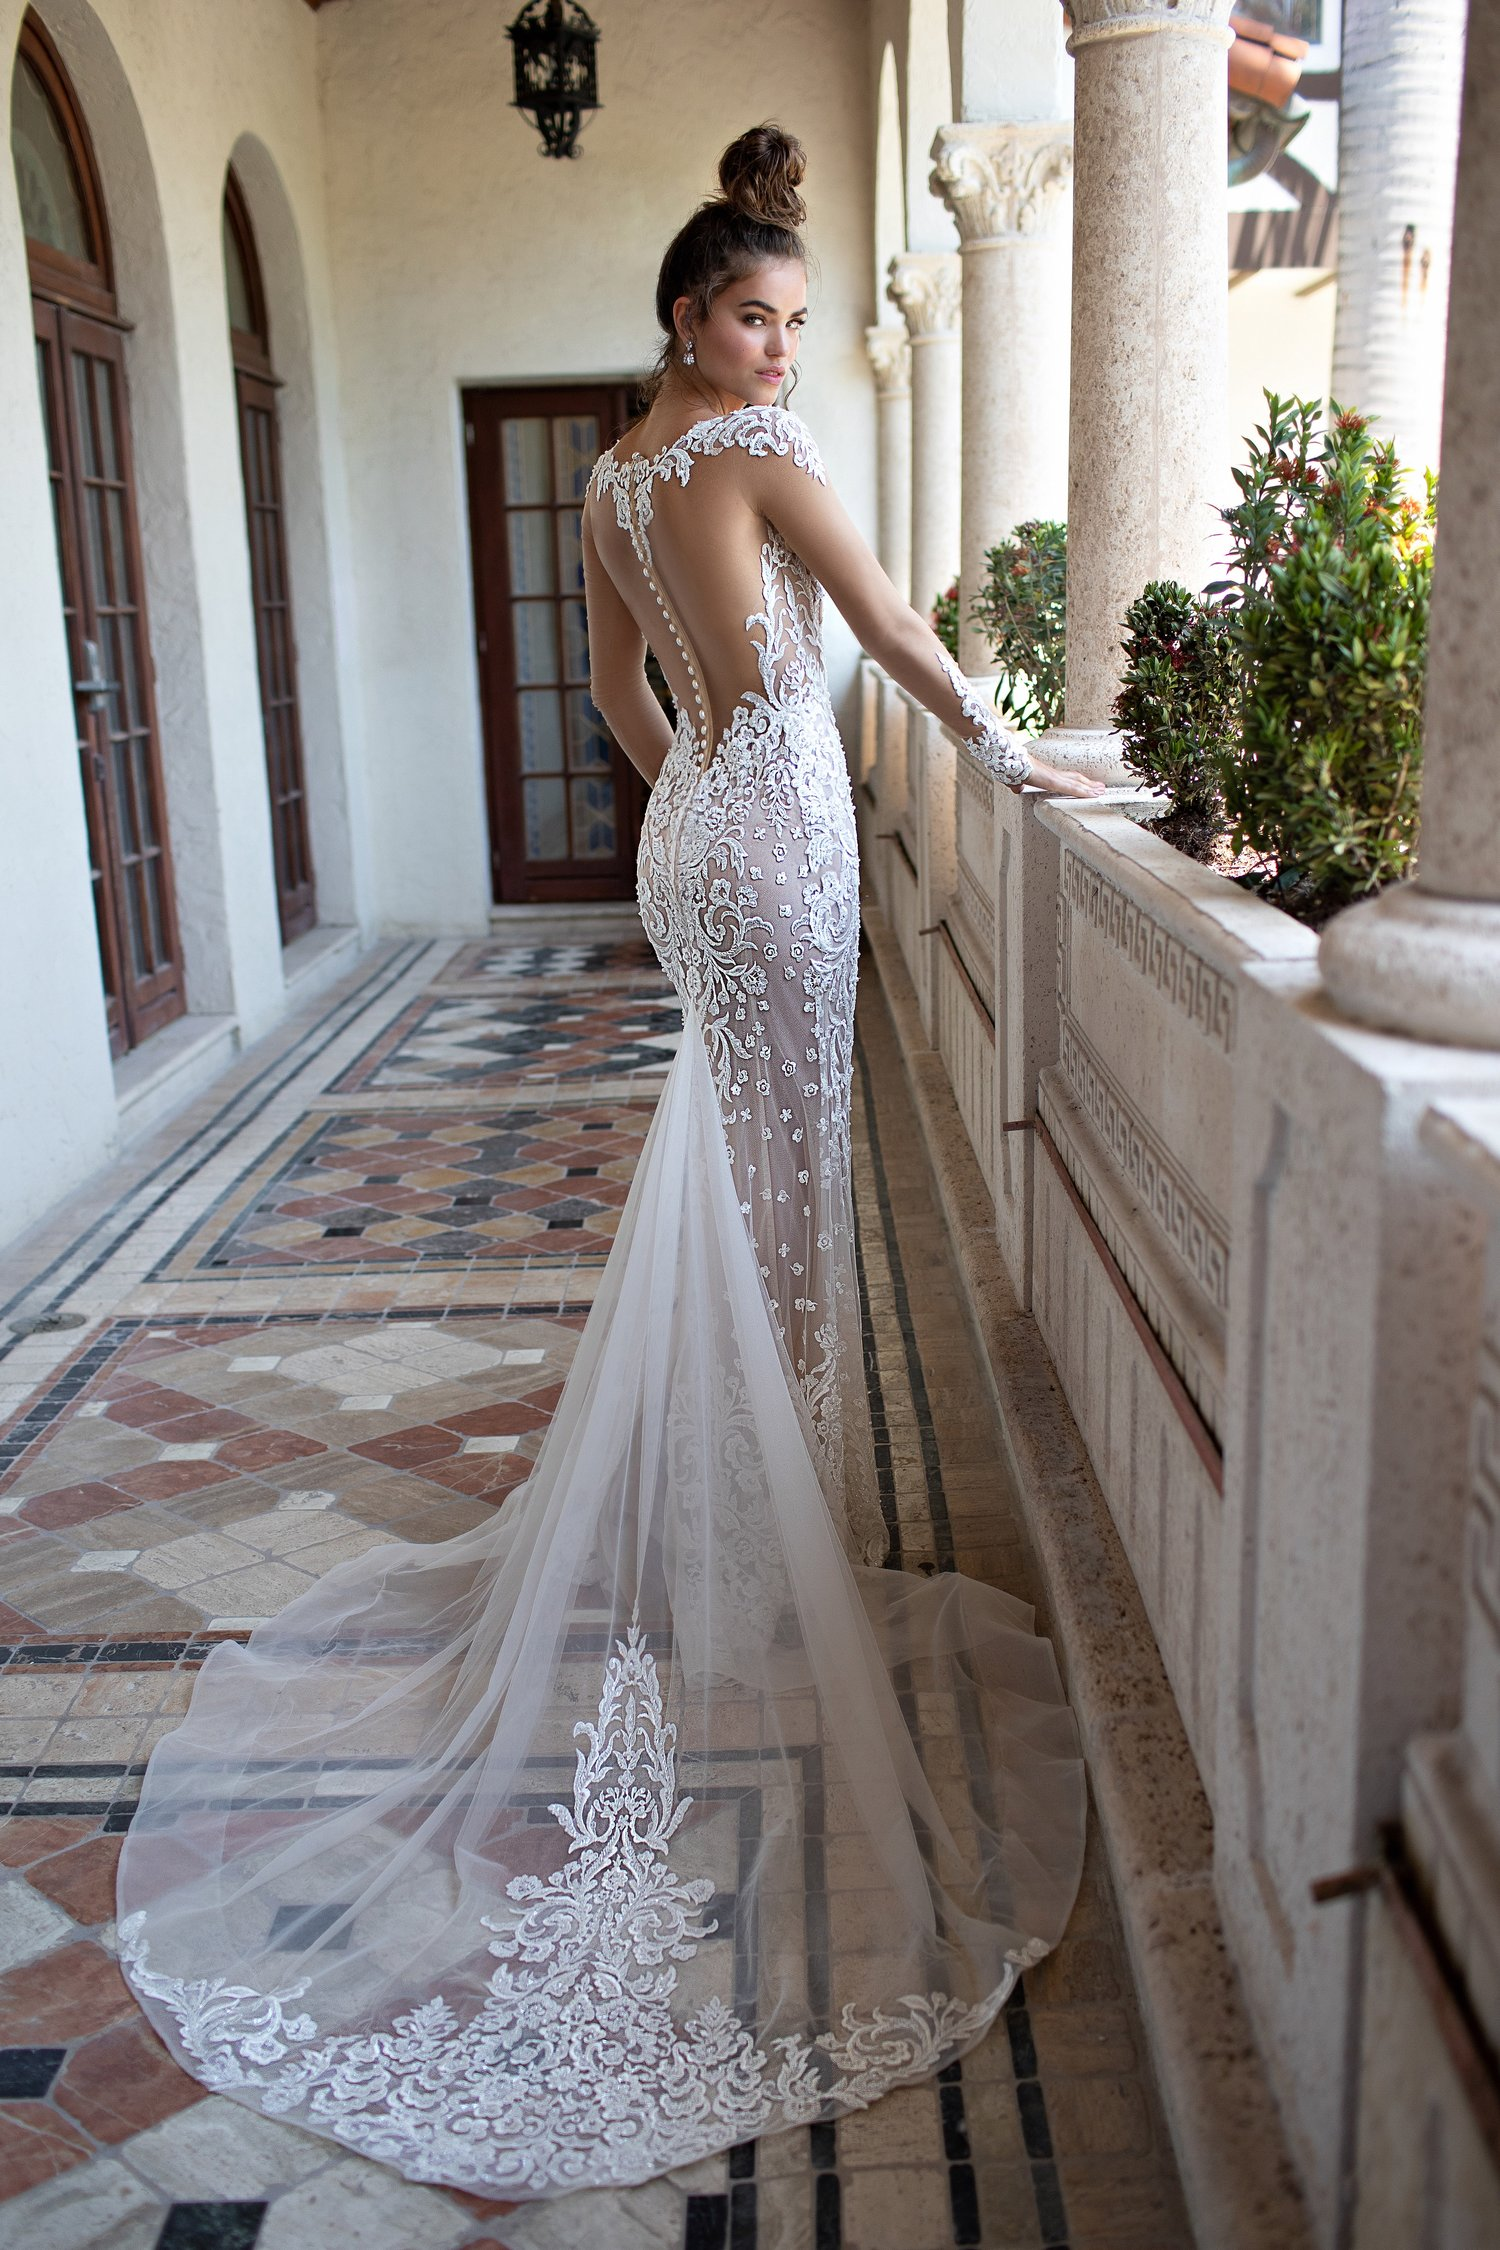 Berta Trunk Show Columbus Ohio Designer Bridal Gowns La Jeune Mariee Collection,Wedding Traditional Wedding Guest Dress Ghanaian Lace Styles